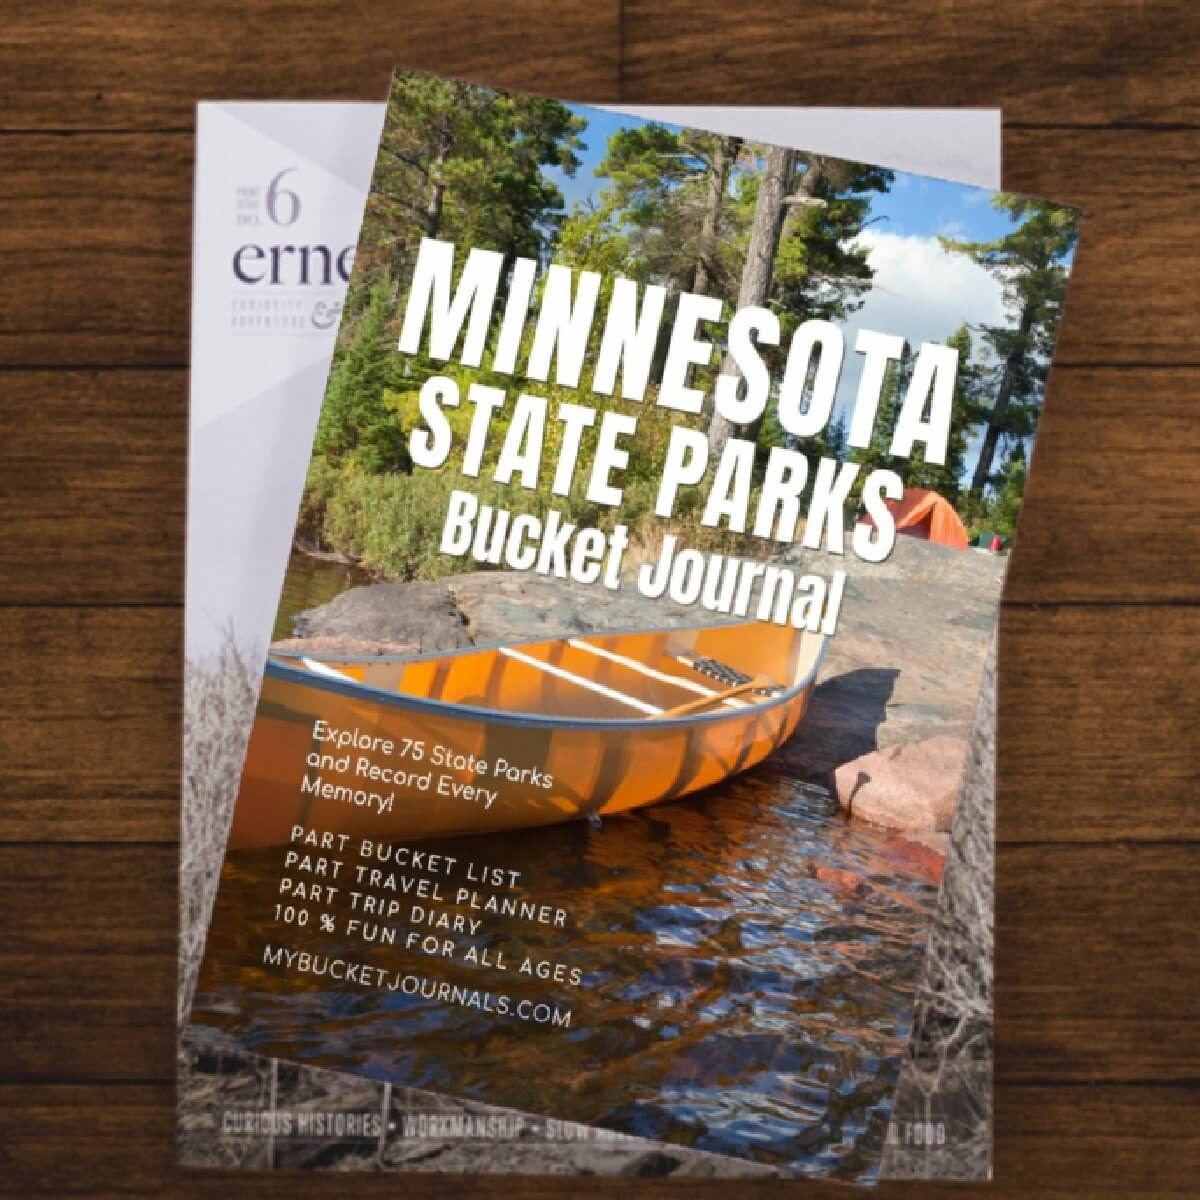 Minnesota State Parks Bucket Journal - Paperback